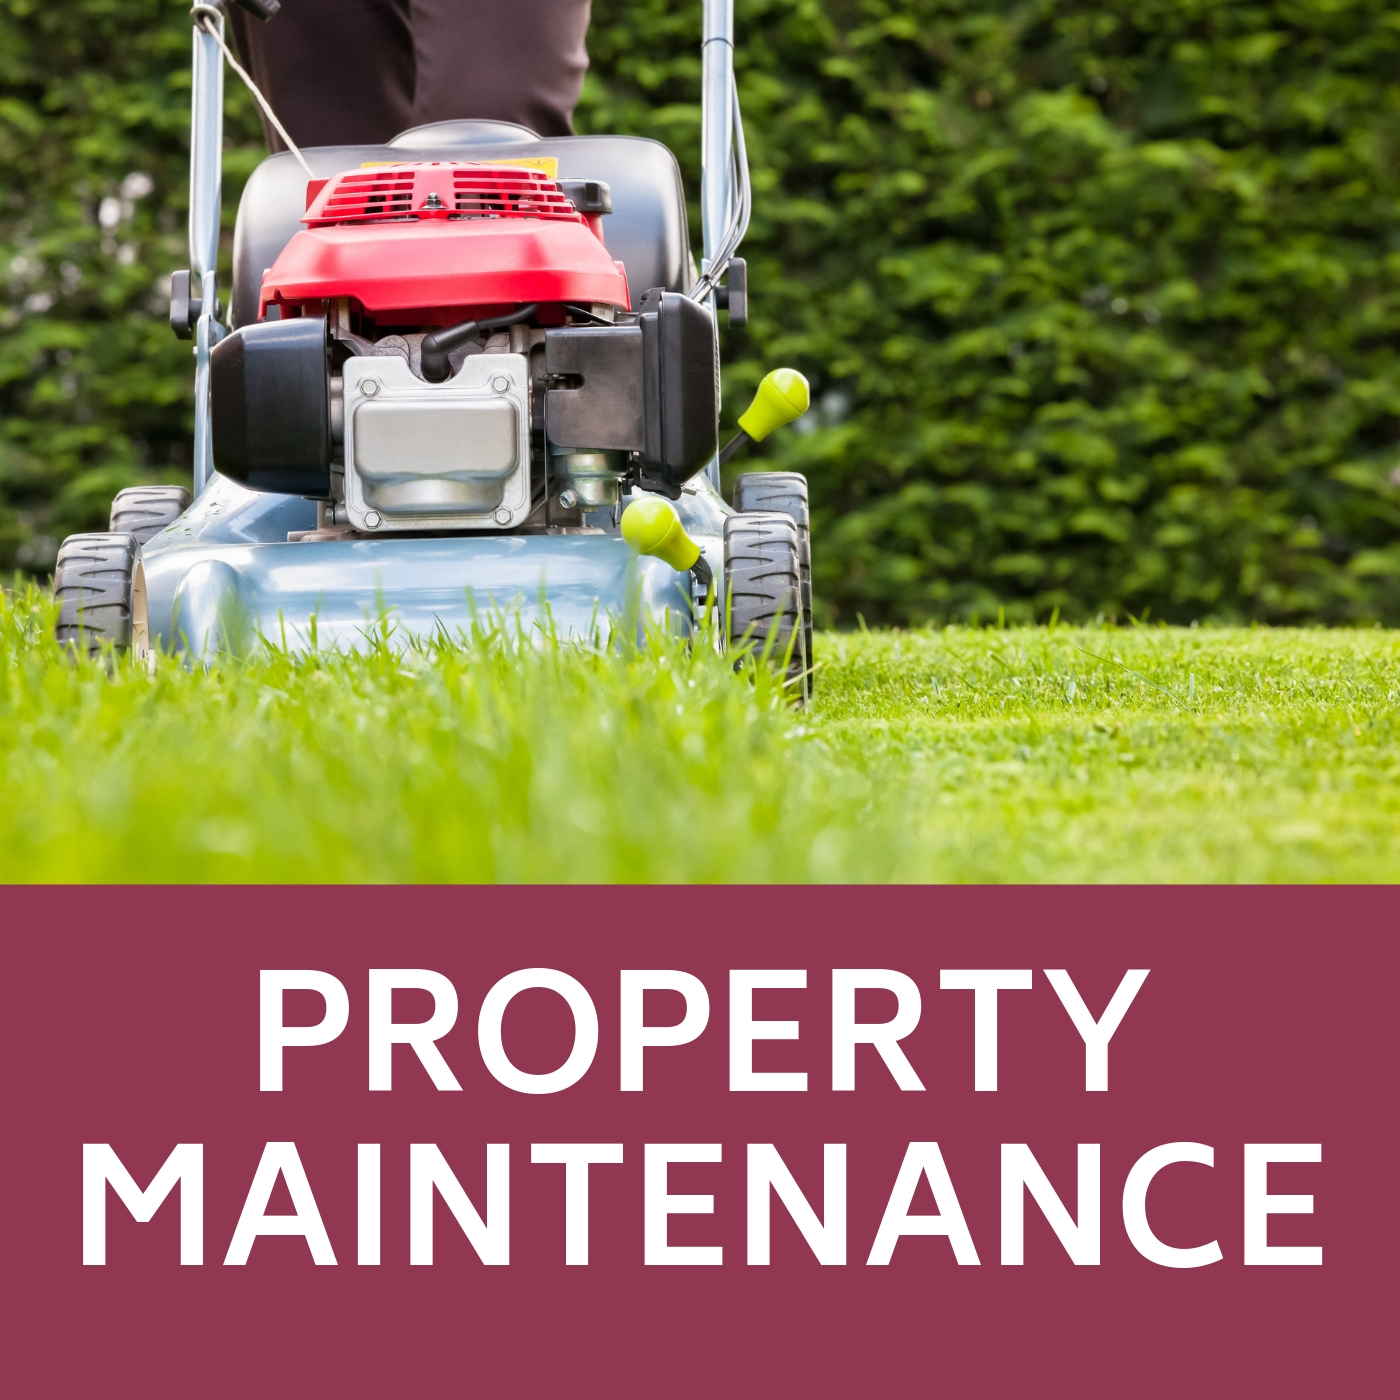 Property Maintenance Icon that links to information about property maintenance